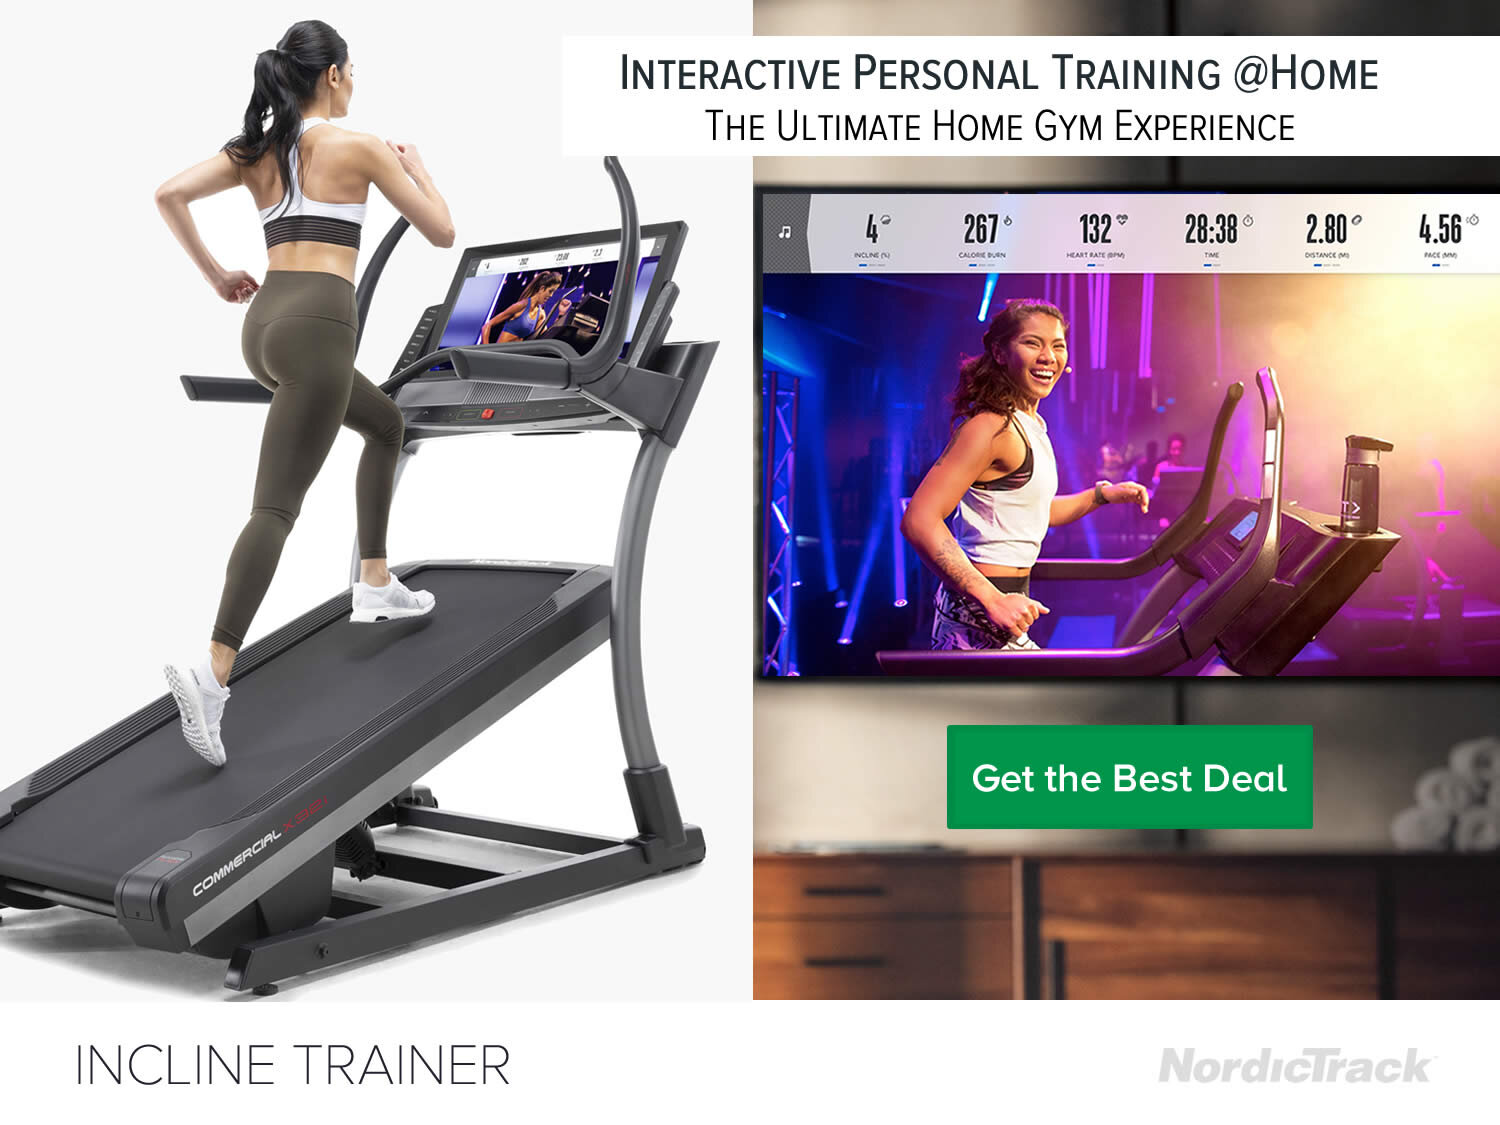 Nordictrack X32i Incline Treadmill with Interactive Studio Workouts at Home